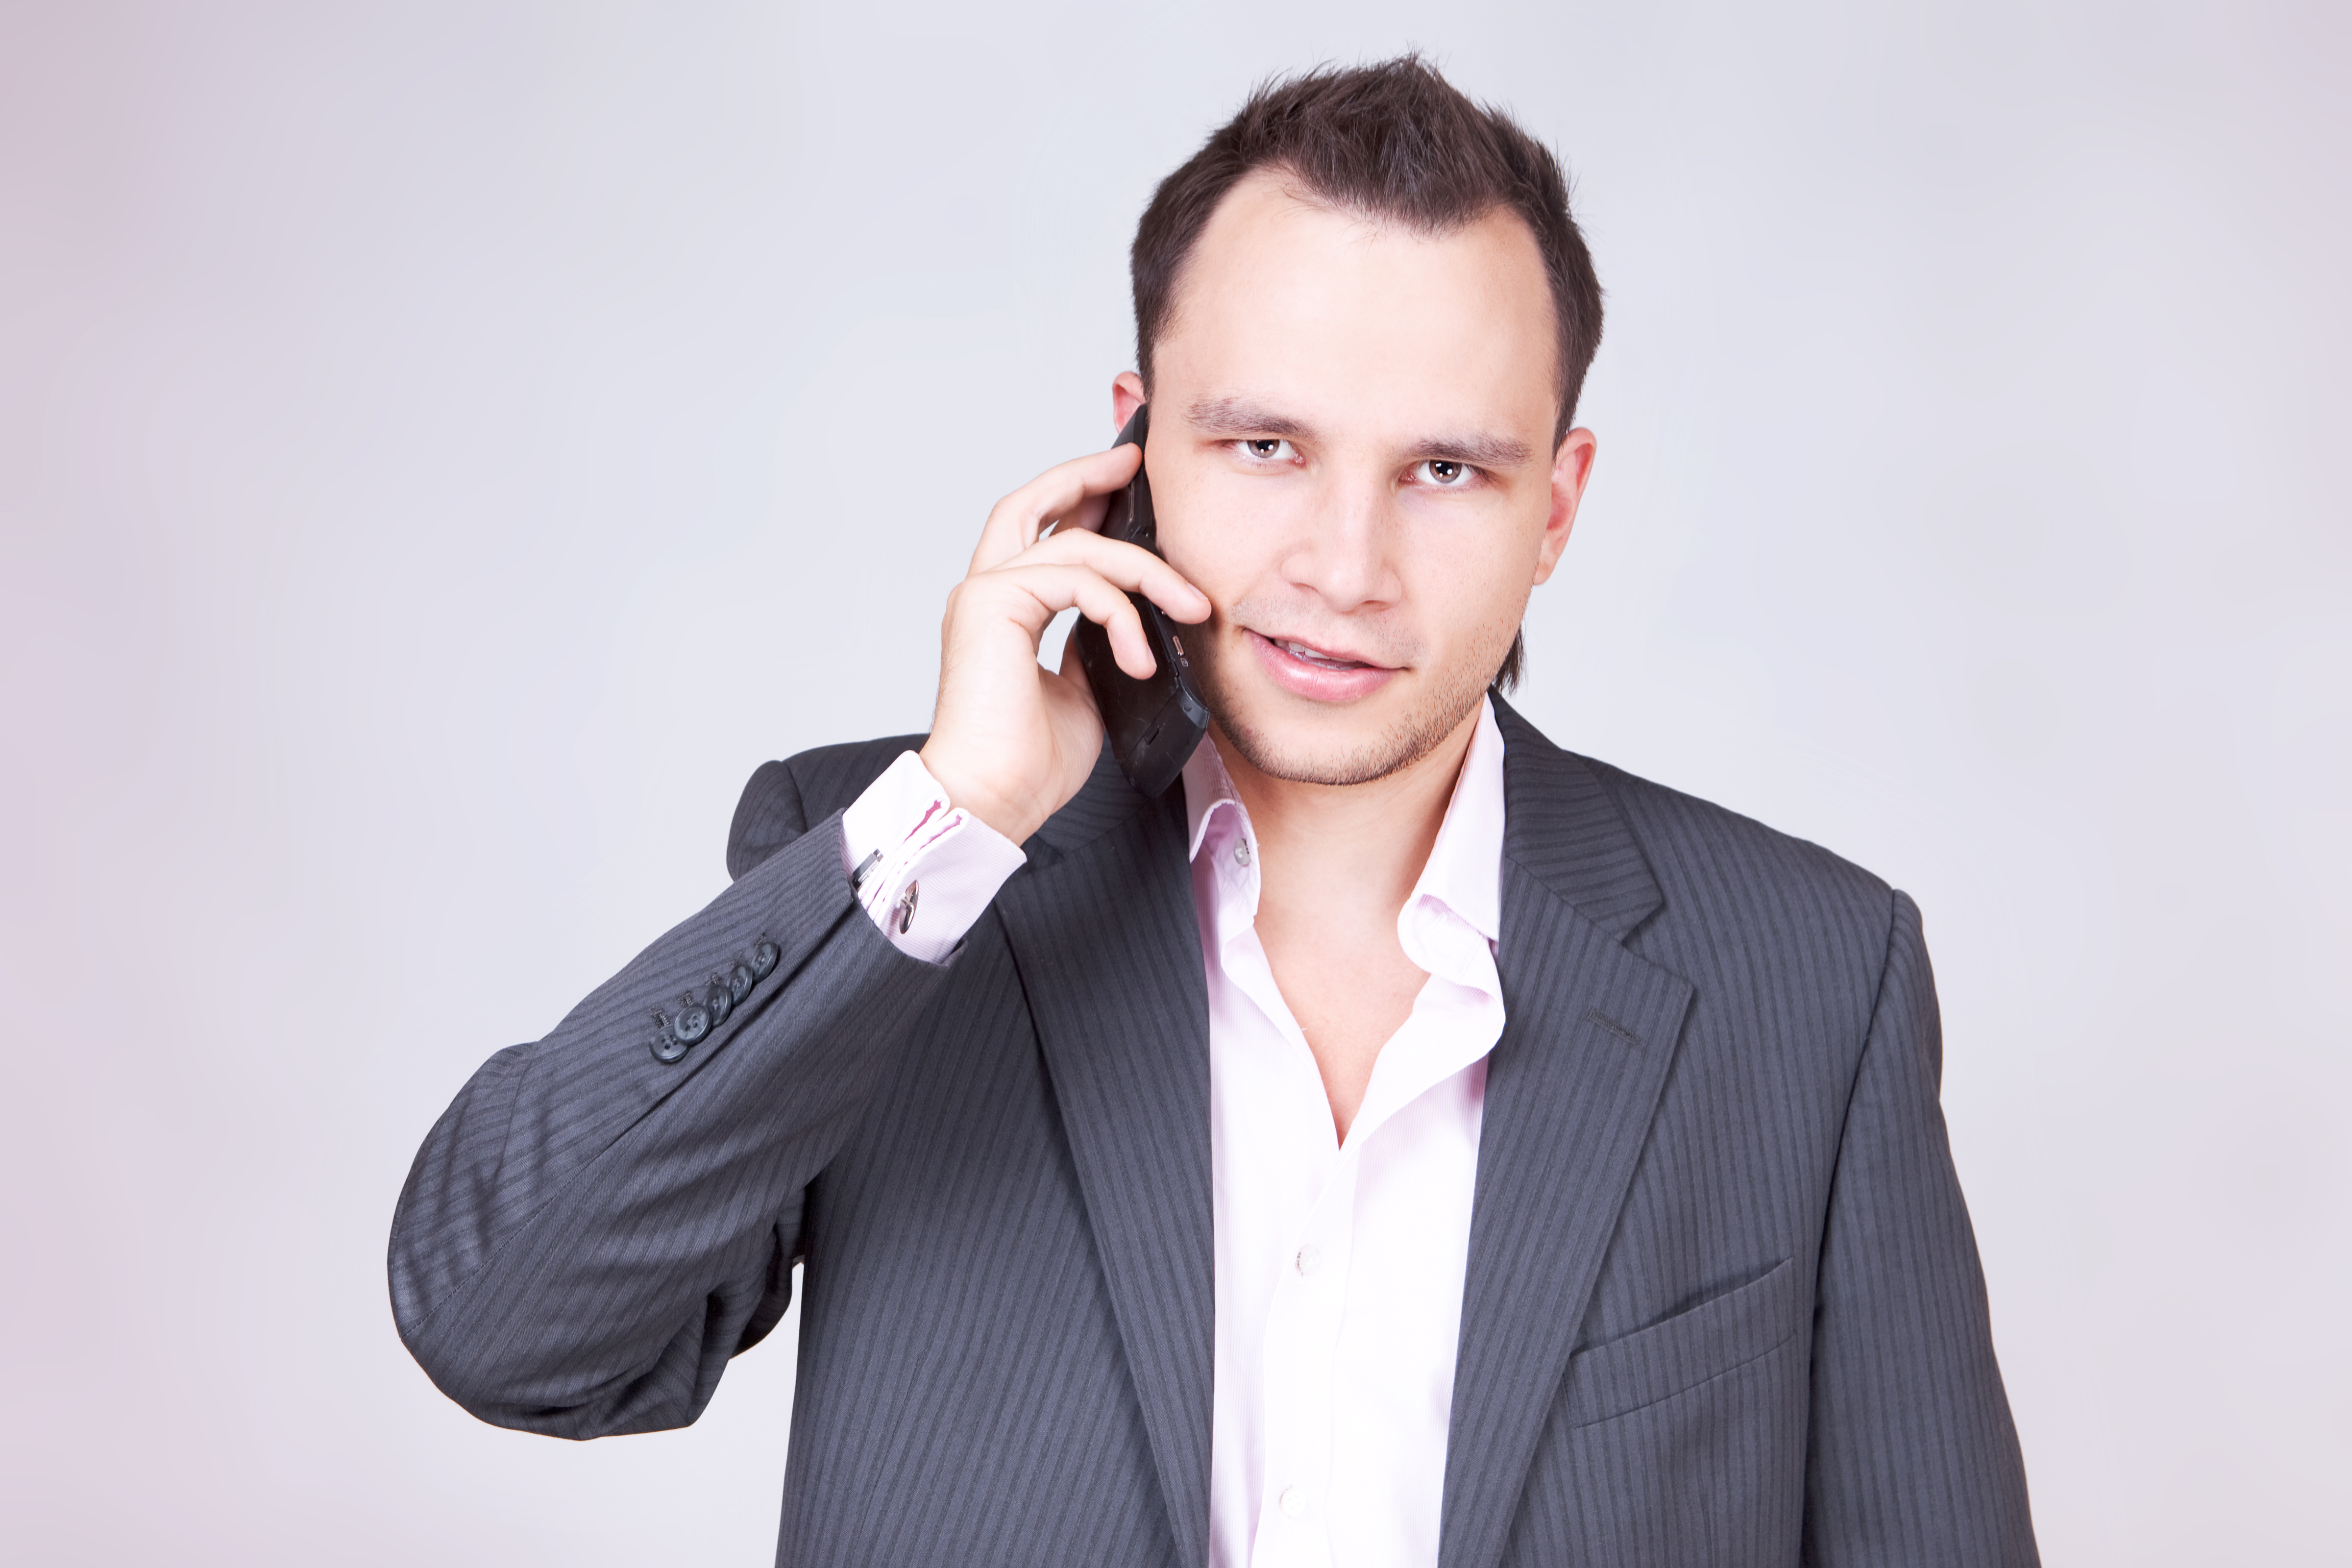 Businessman with phone, Adult, Men, Telephone, Talking, HQ Photo